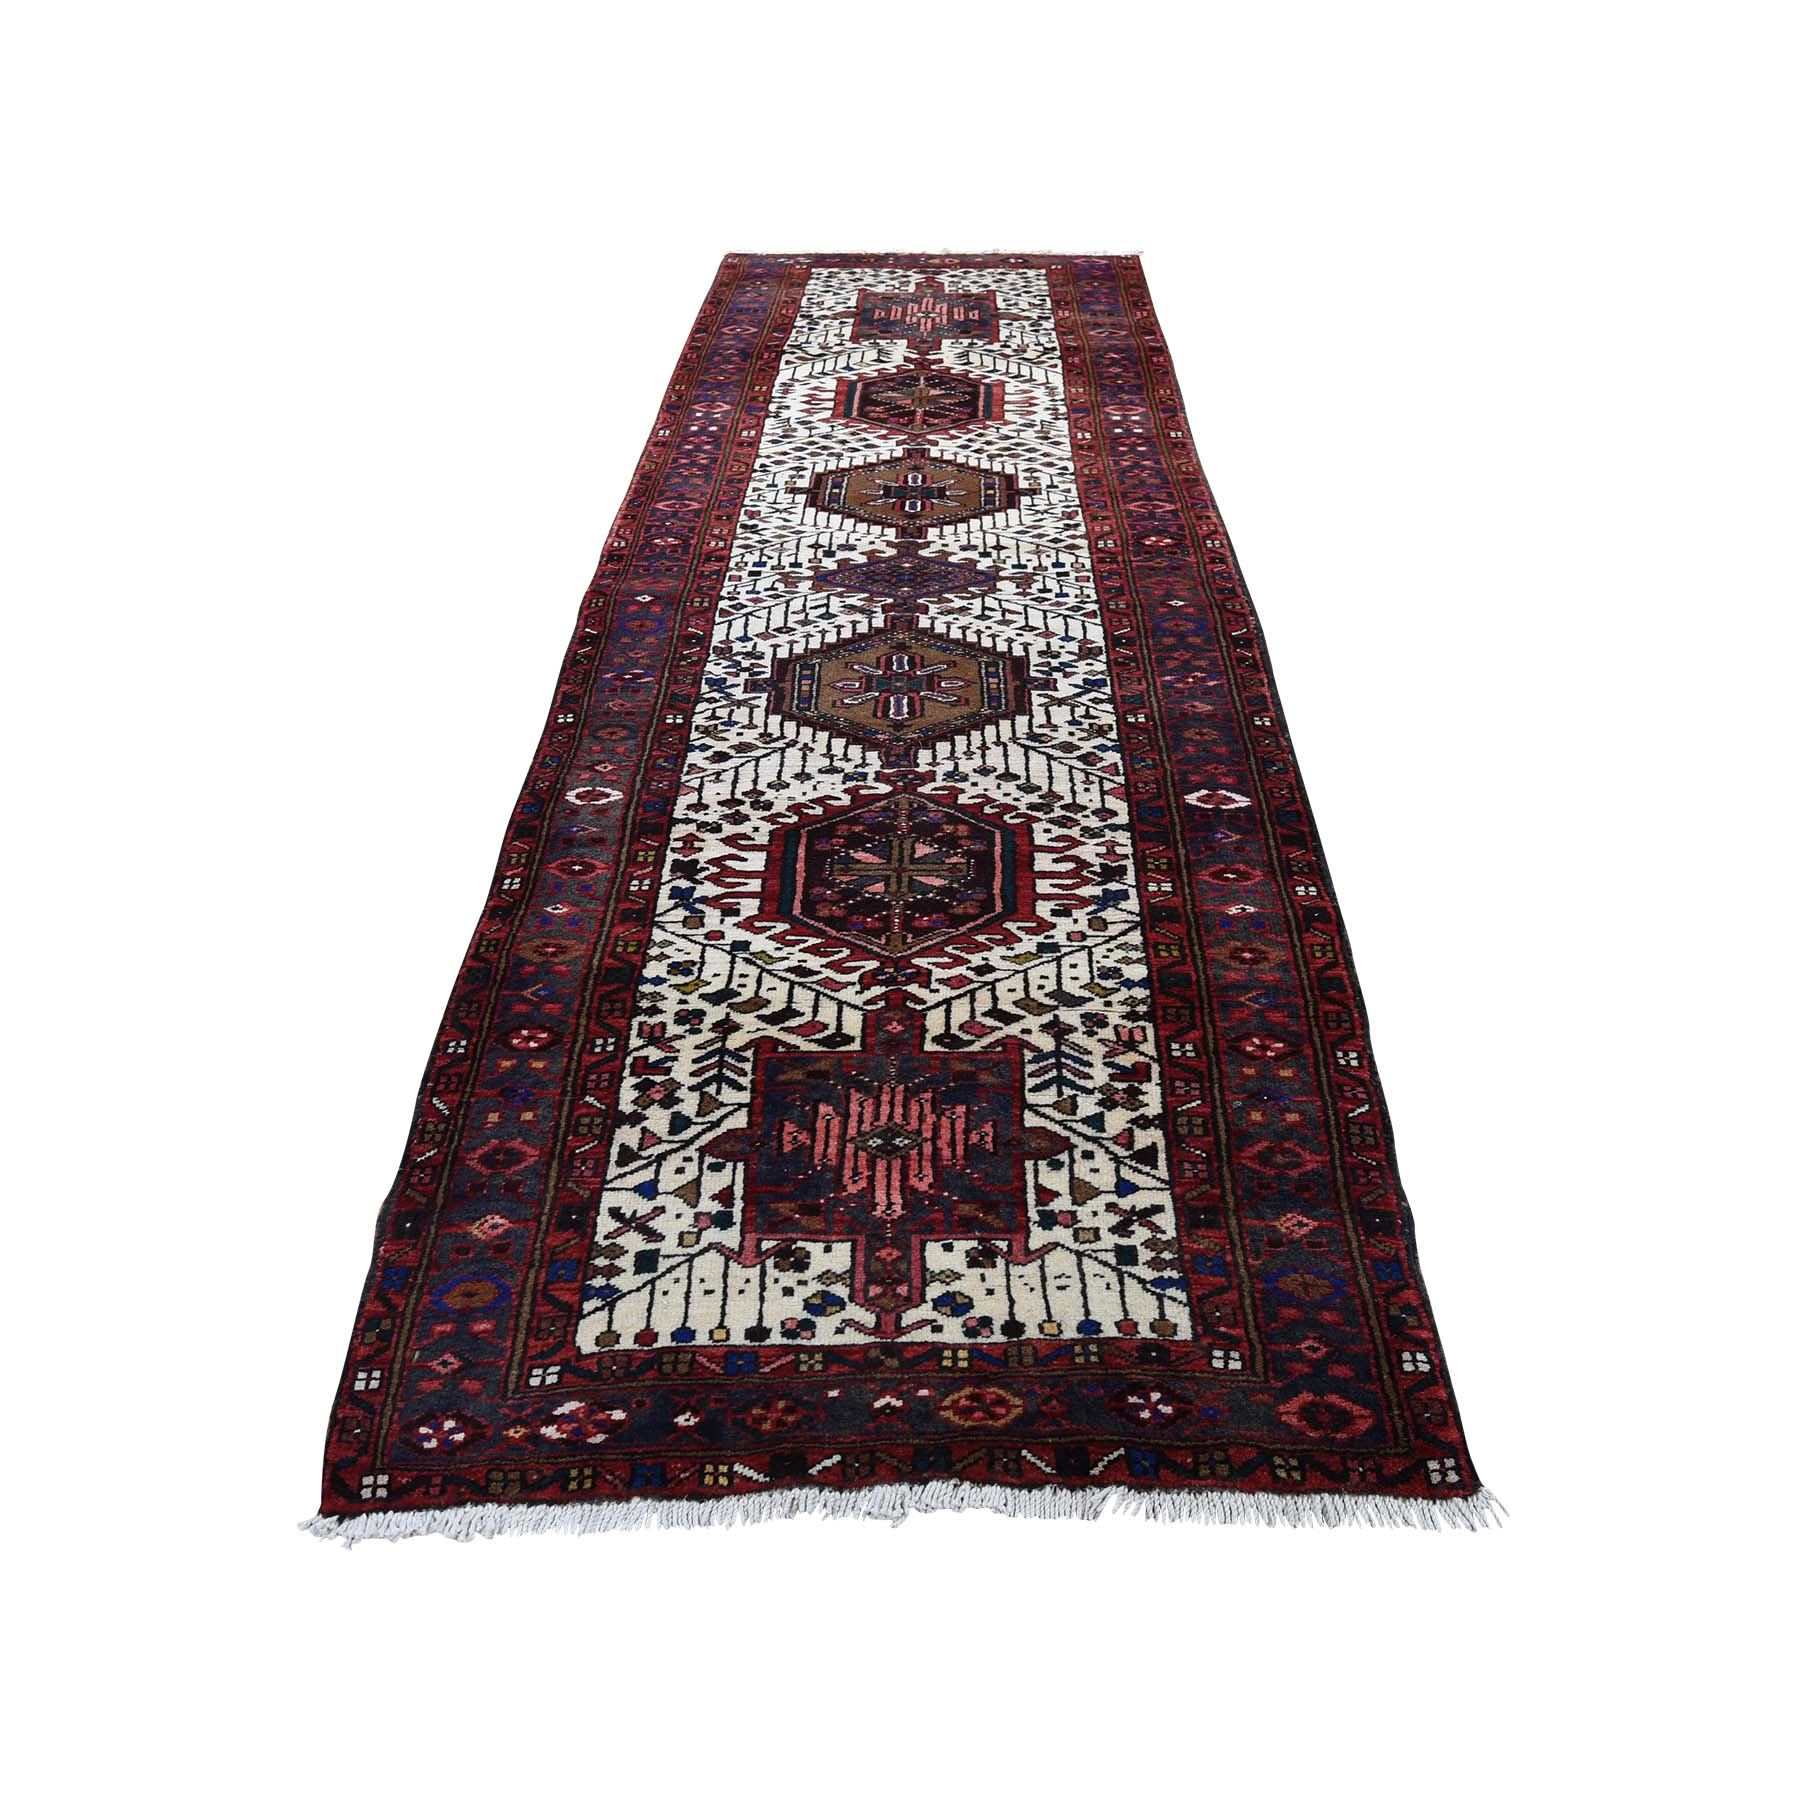 "3'1""x10'10"" Karajeh Ivory Full Pile Pure Wool Runner Semi Antique Persian Hand-Knotted Oriental Rug"